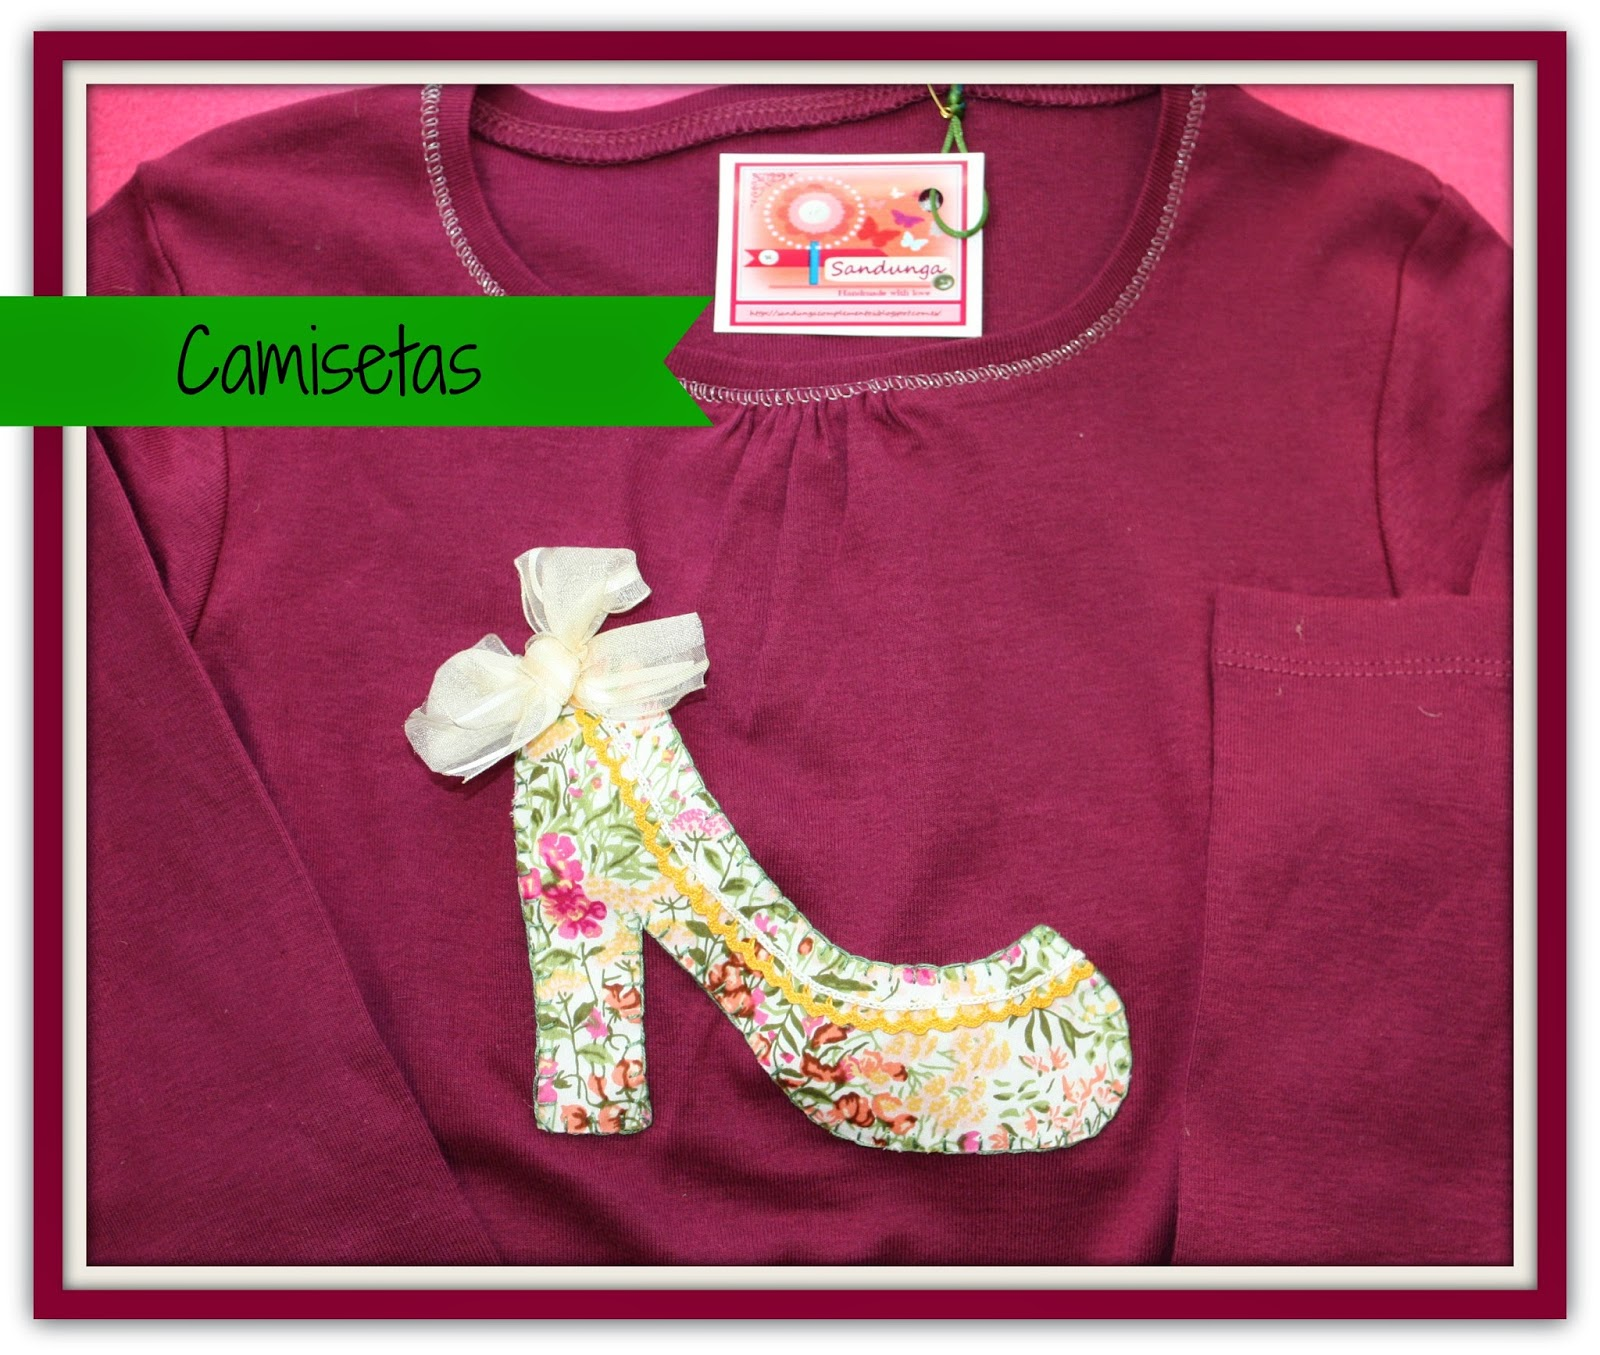 http://sandungacomplementos.blogspot.com/search/label/Camisetas